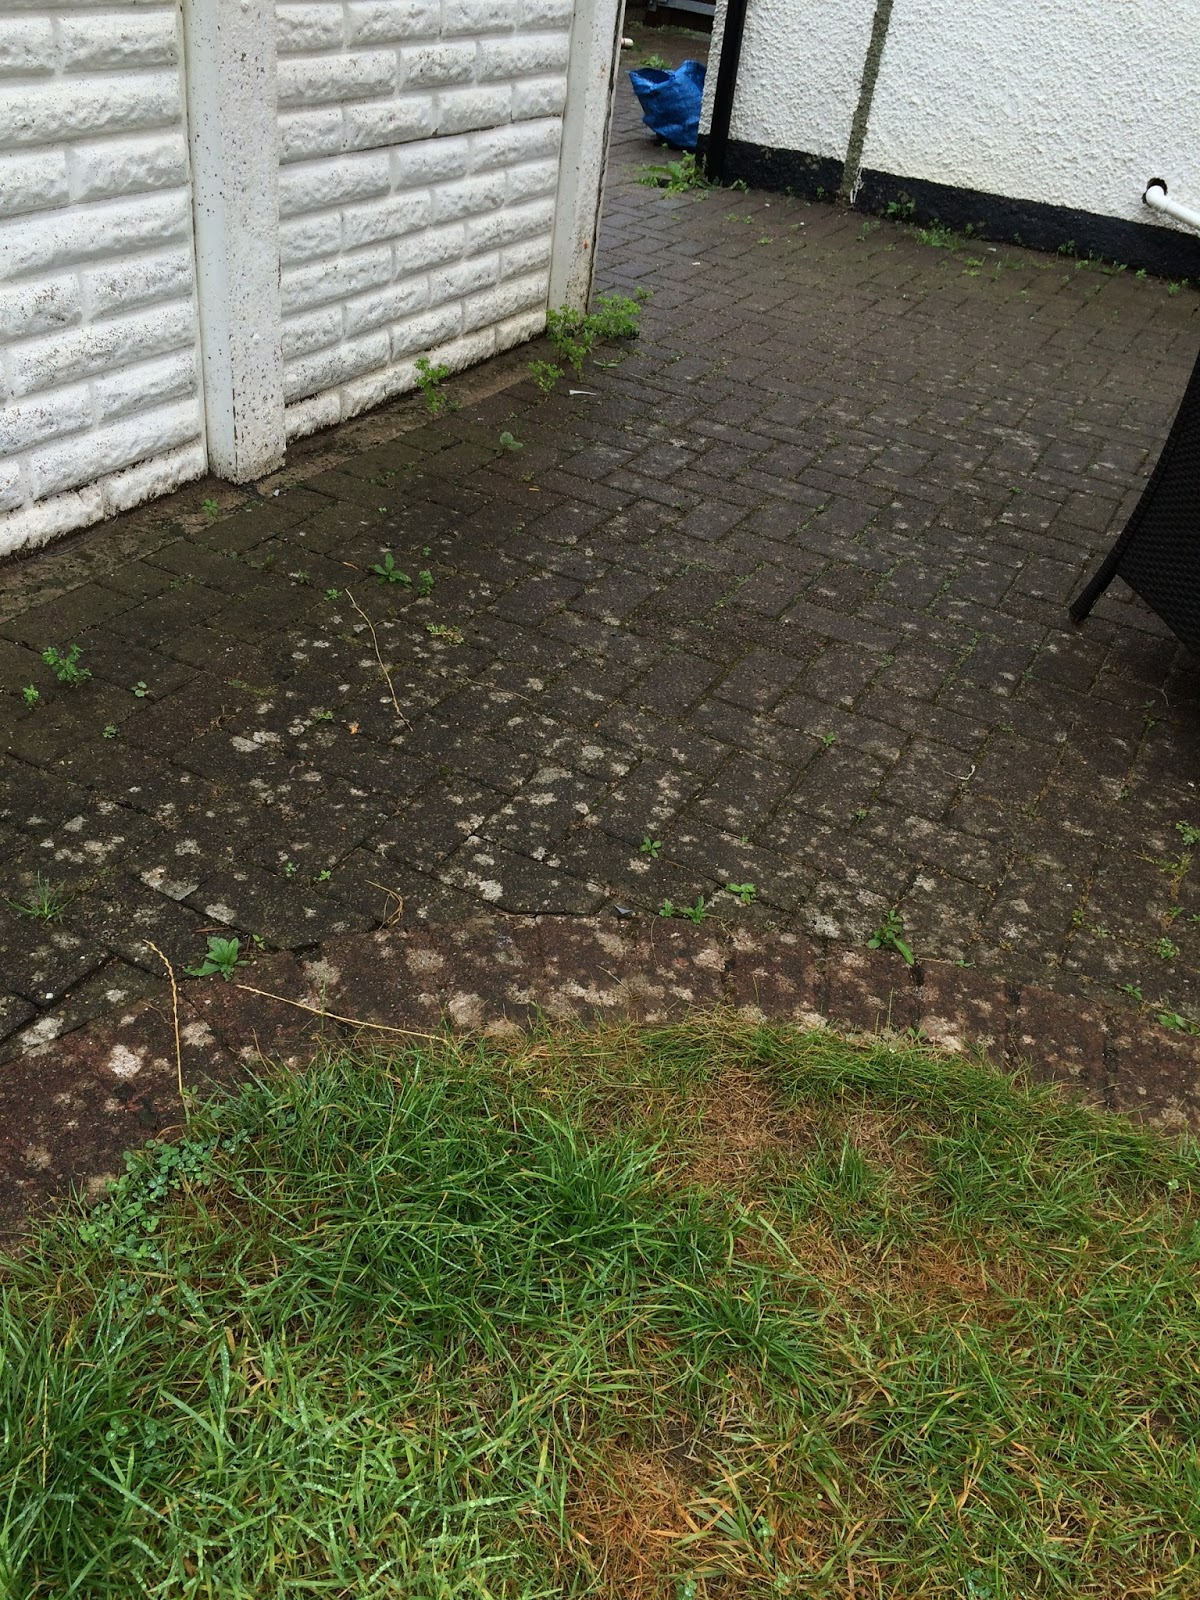 garden clean up - patio area in need of weeding